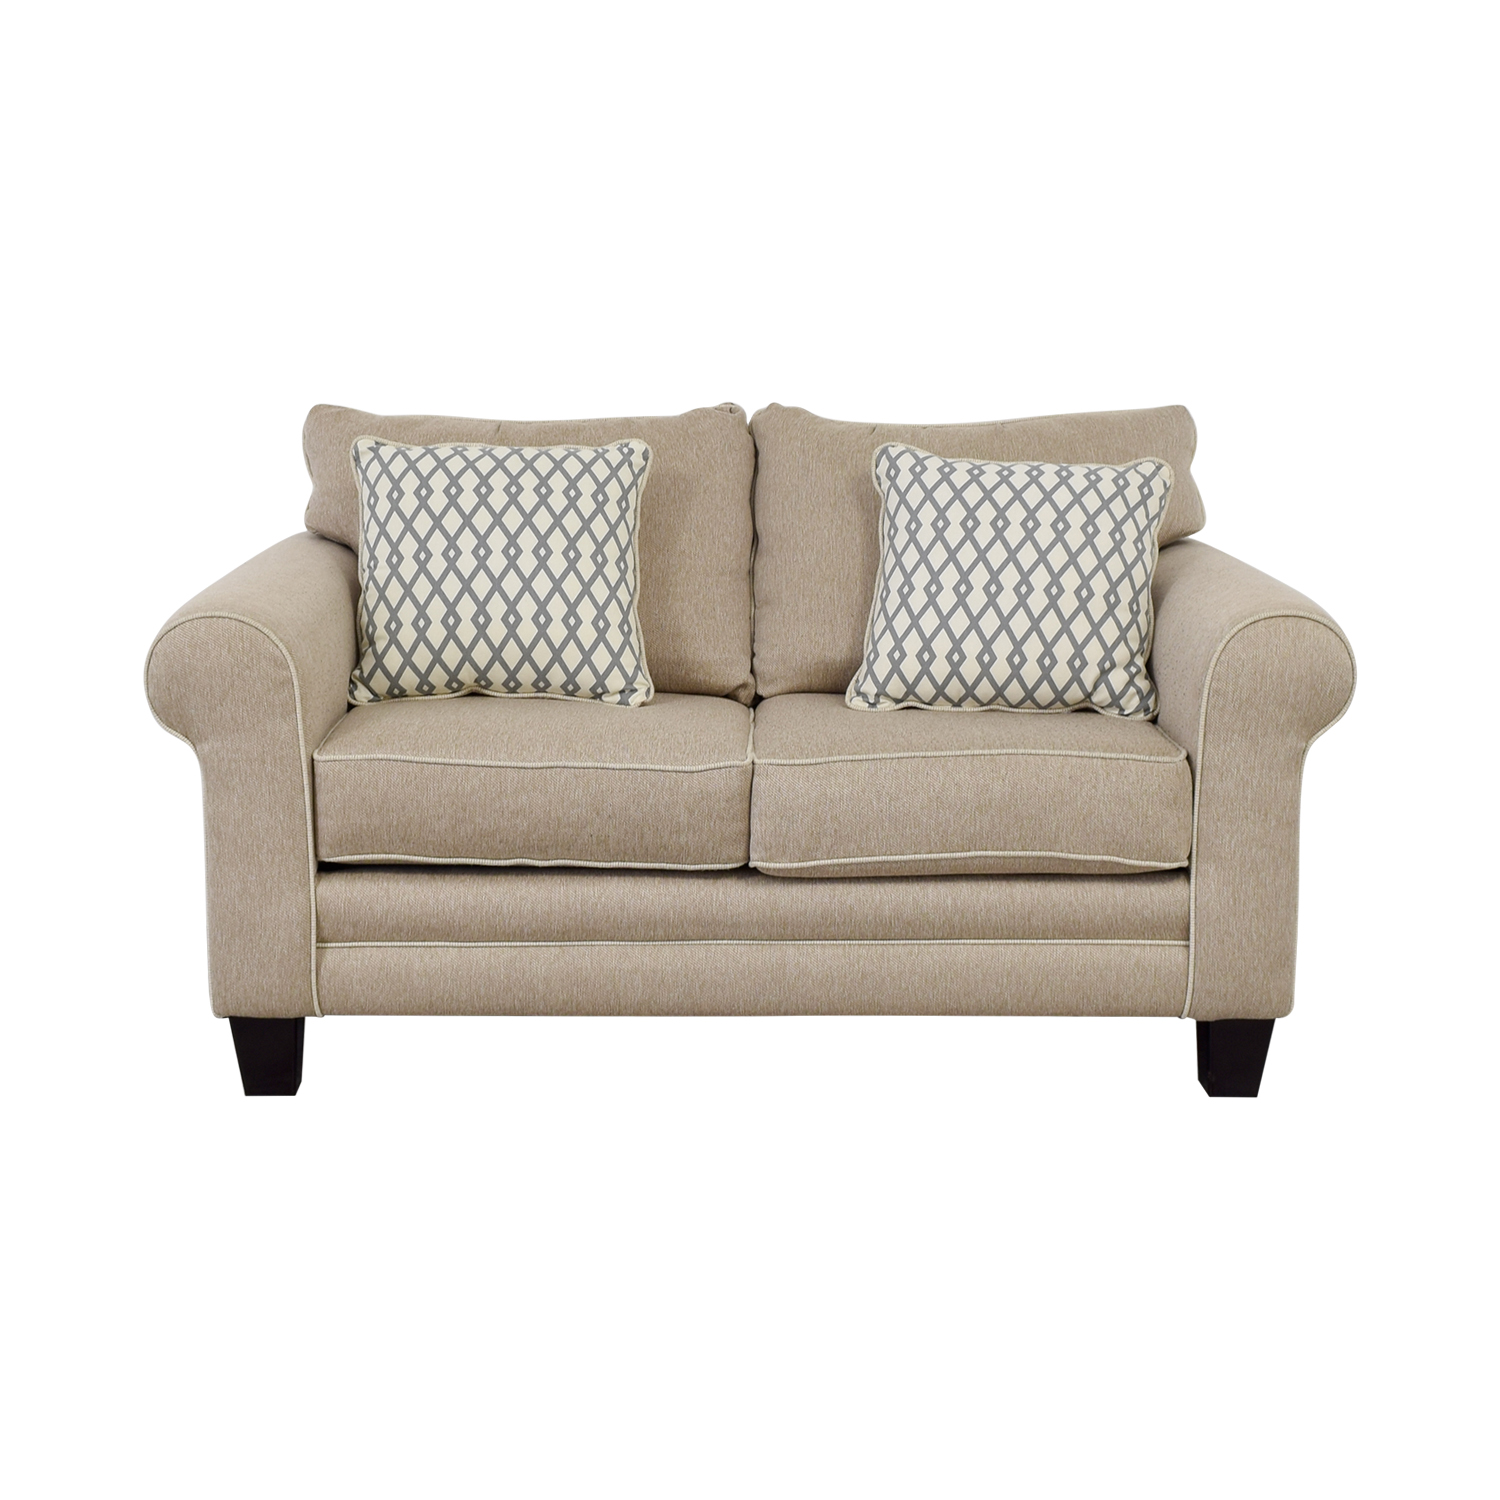 Raymour & Flanigan Raymour & Flanigan Beige Loveseat on sale